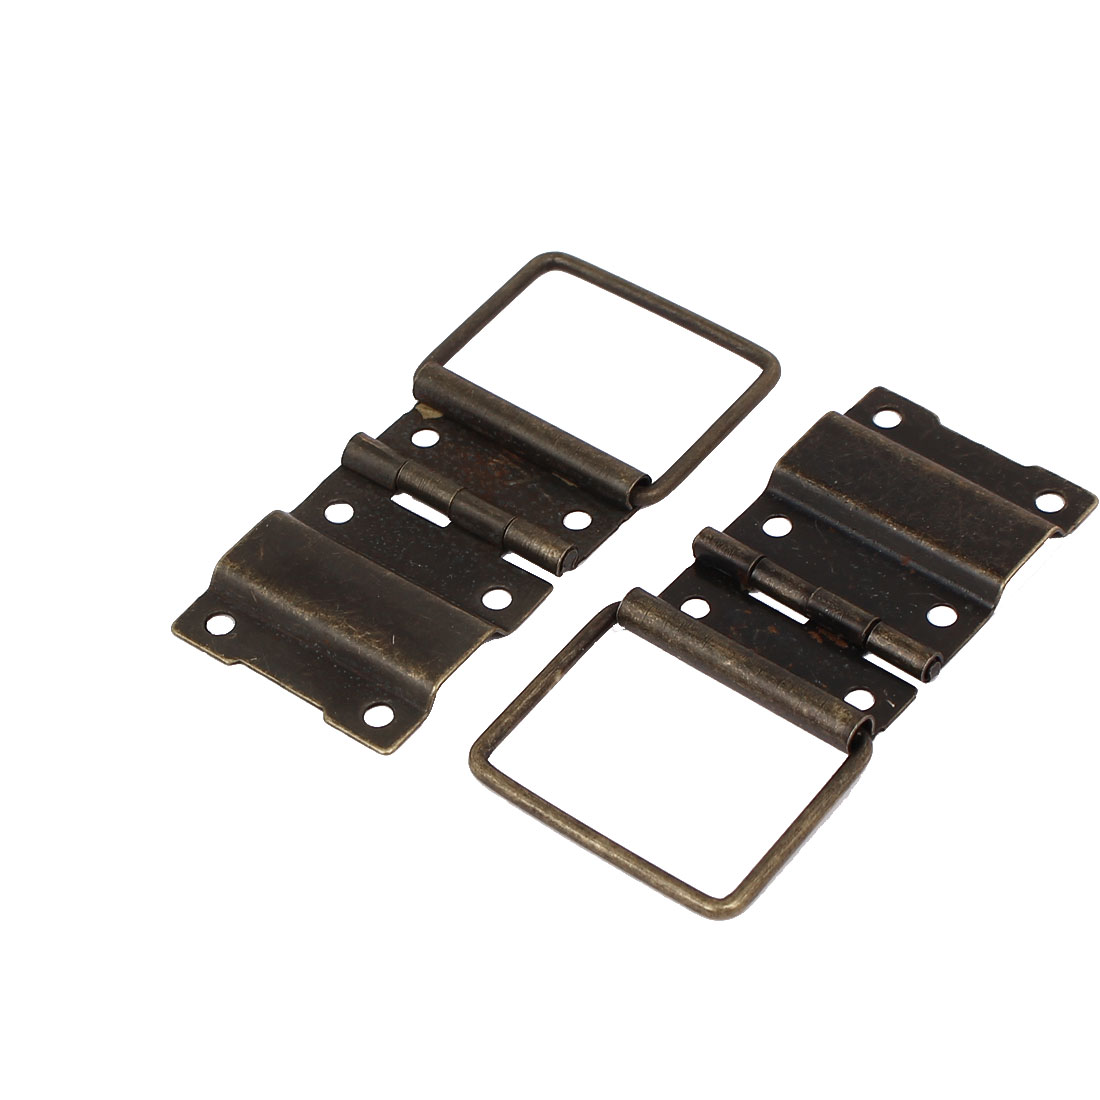 Box Case Retro Style Positioning Support Hinges Bronze Tone 44mmx30mm 2pcs